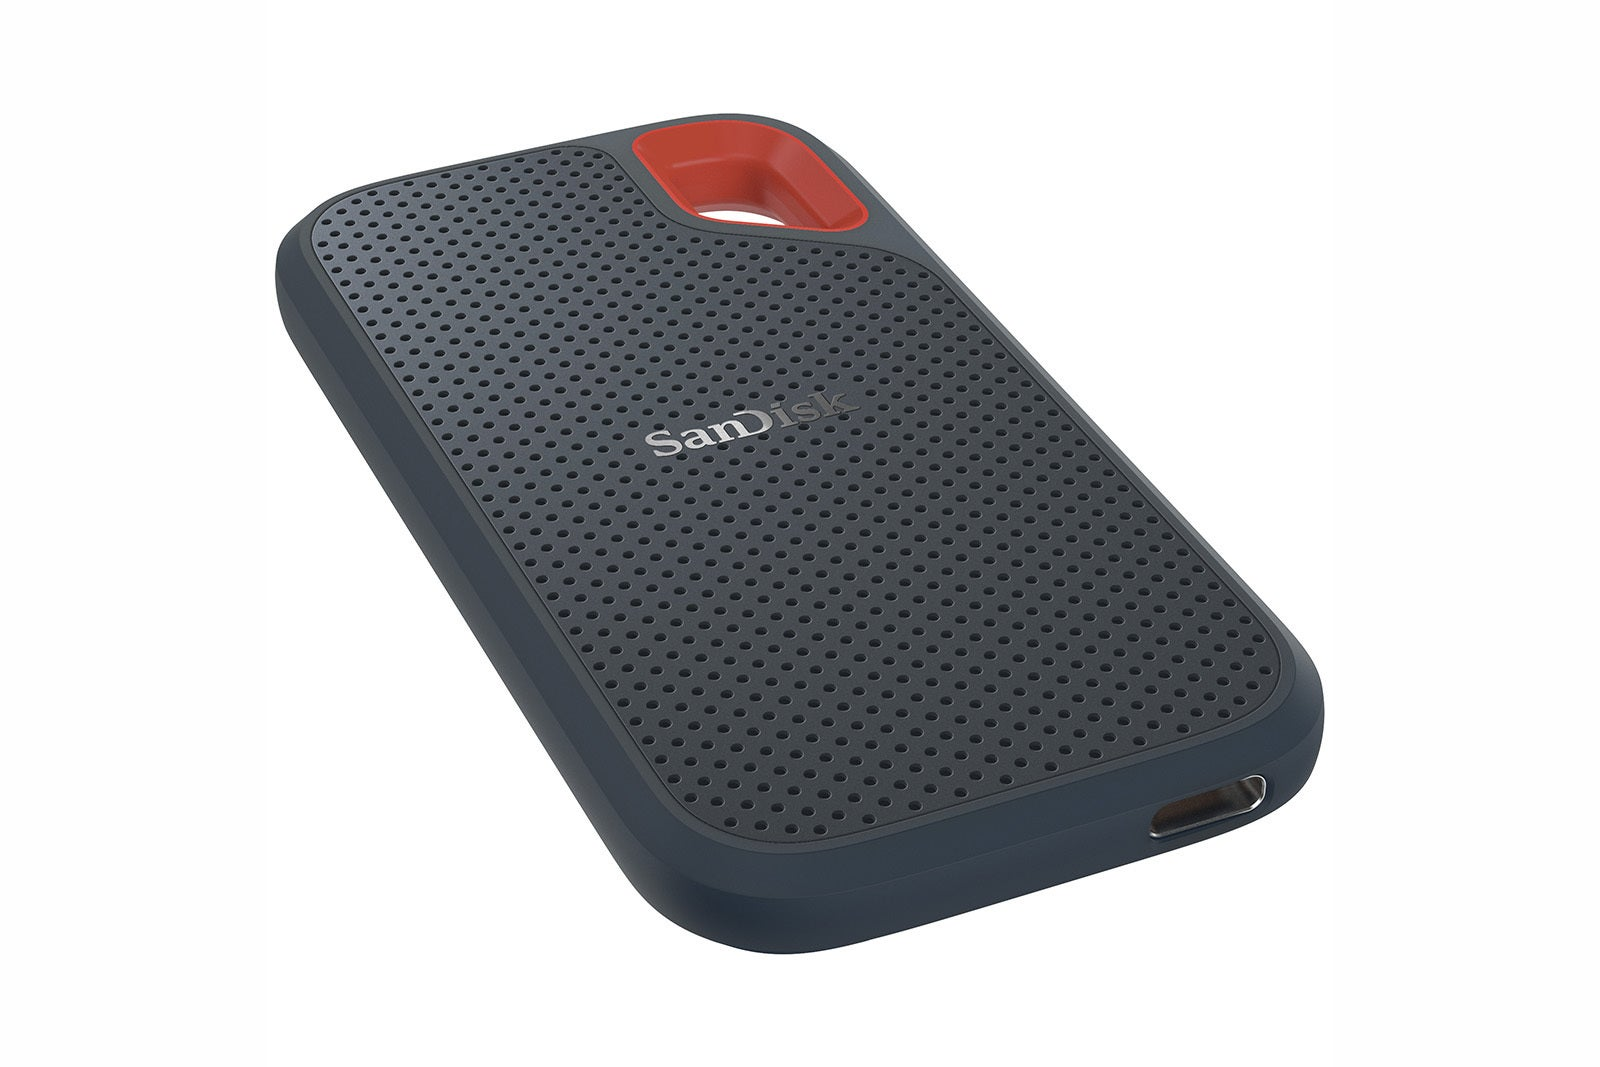 Sandisk Extreme Portable SSD: Classy, practical, and speedy USB 3.1 Gen 2 storage | PCWorld